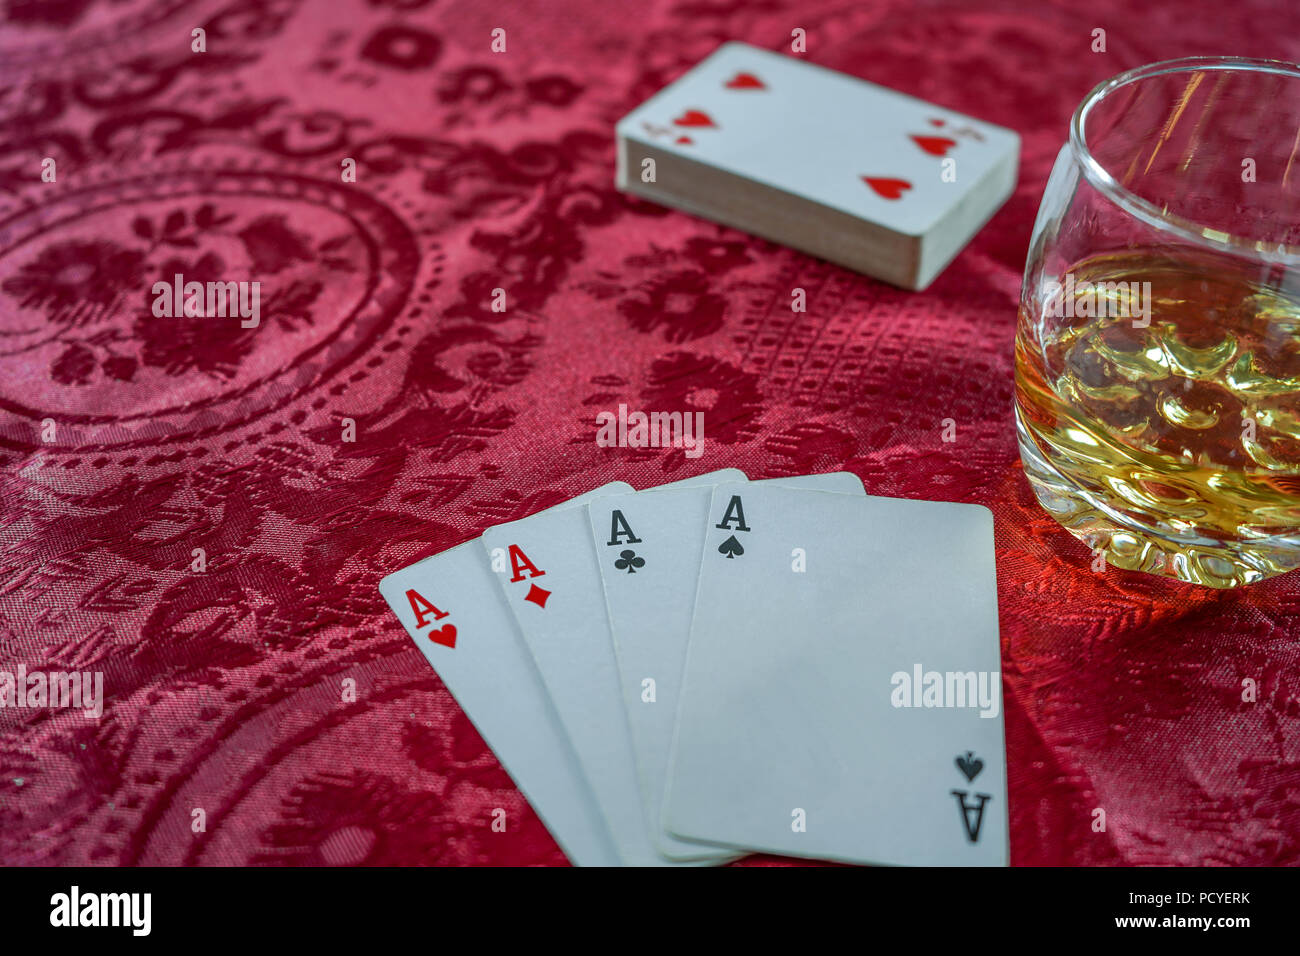 A playing card is a piece of specially prepared heavy paper, thin cardboard, plastic-coated paper, cotton-paper blend, or thin plastic, marked with di - Stock Image